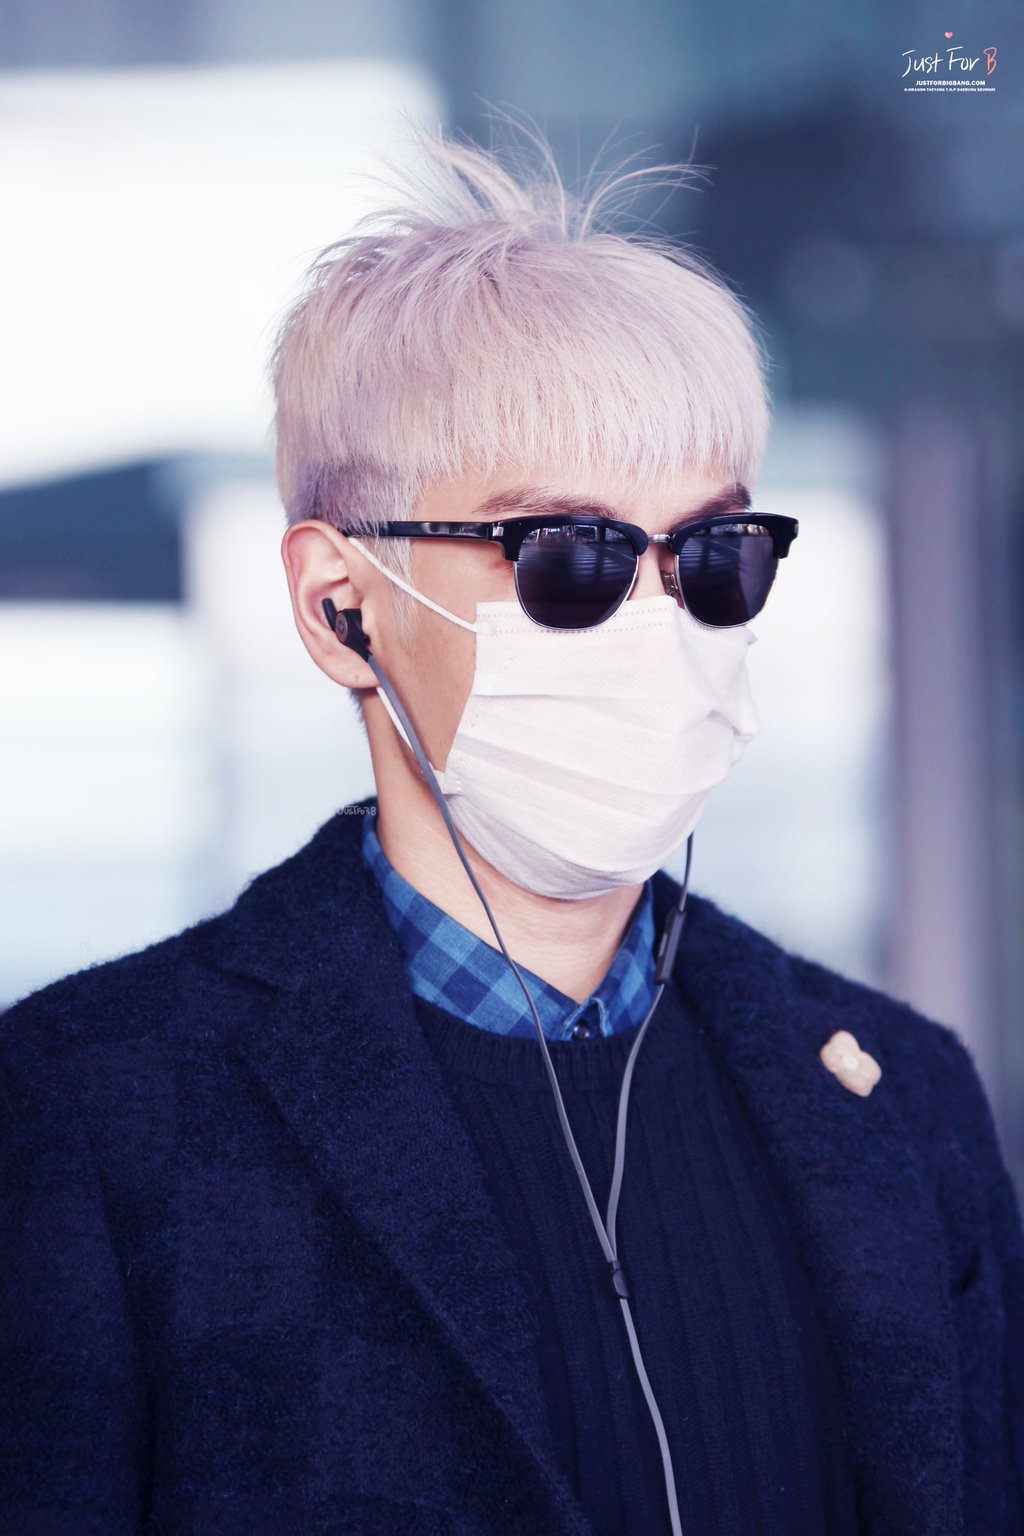 TOP - Incheon Airport - 26jan2016 - Just_for_BB - 04